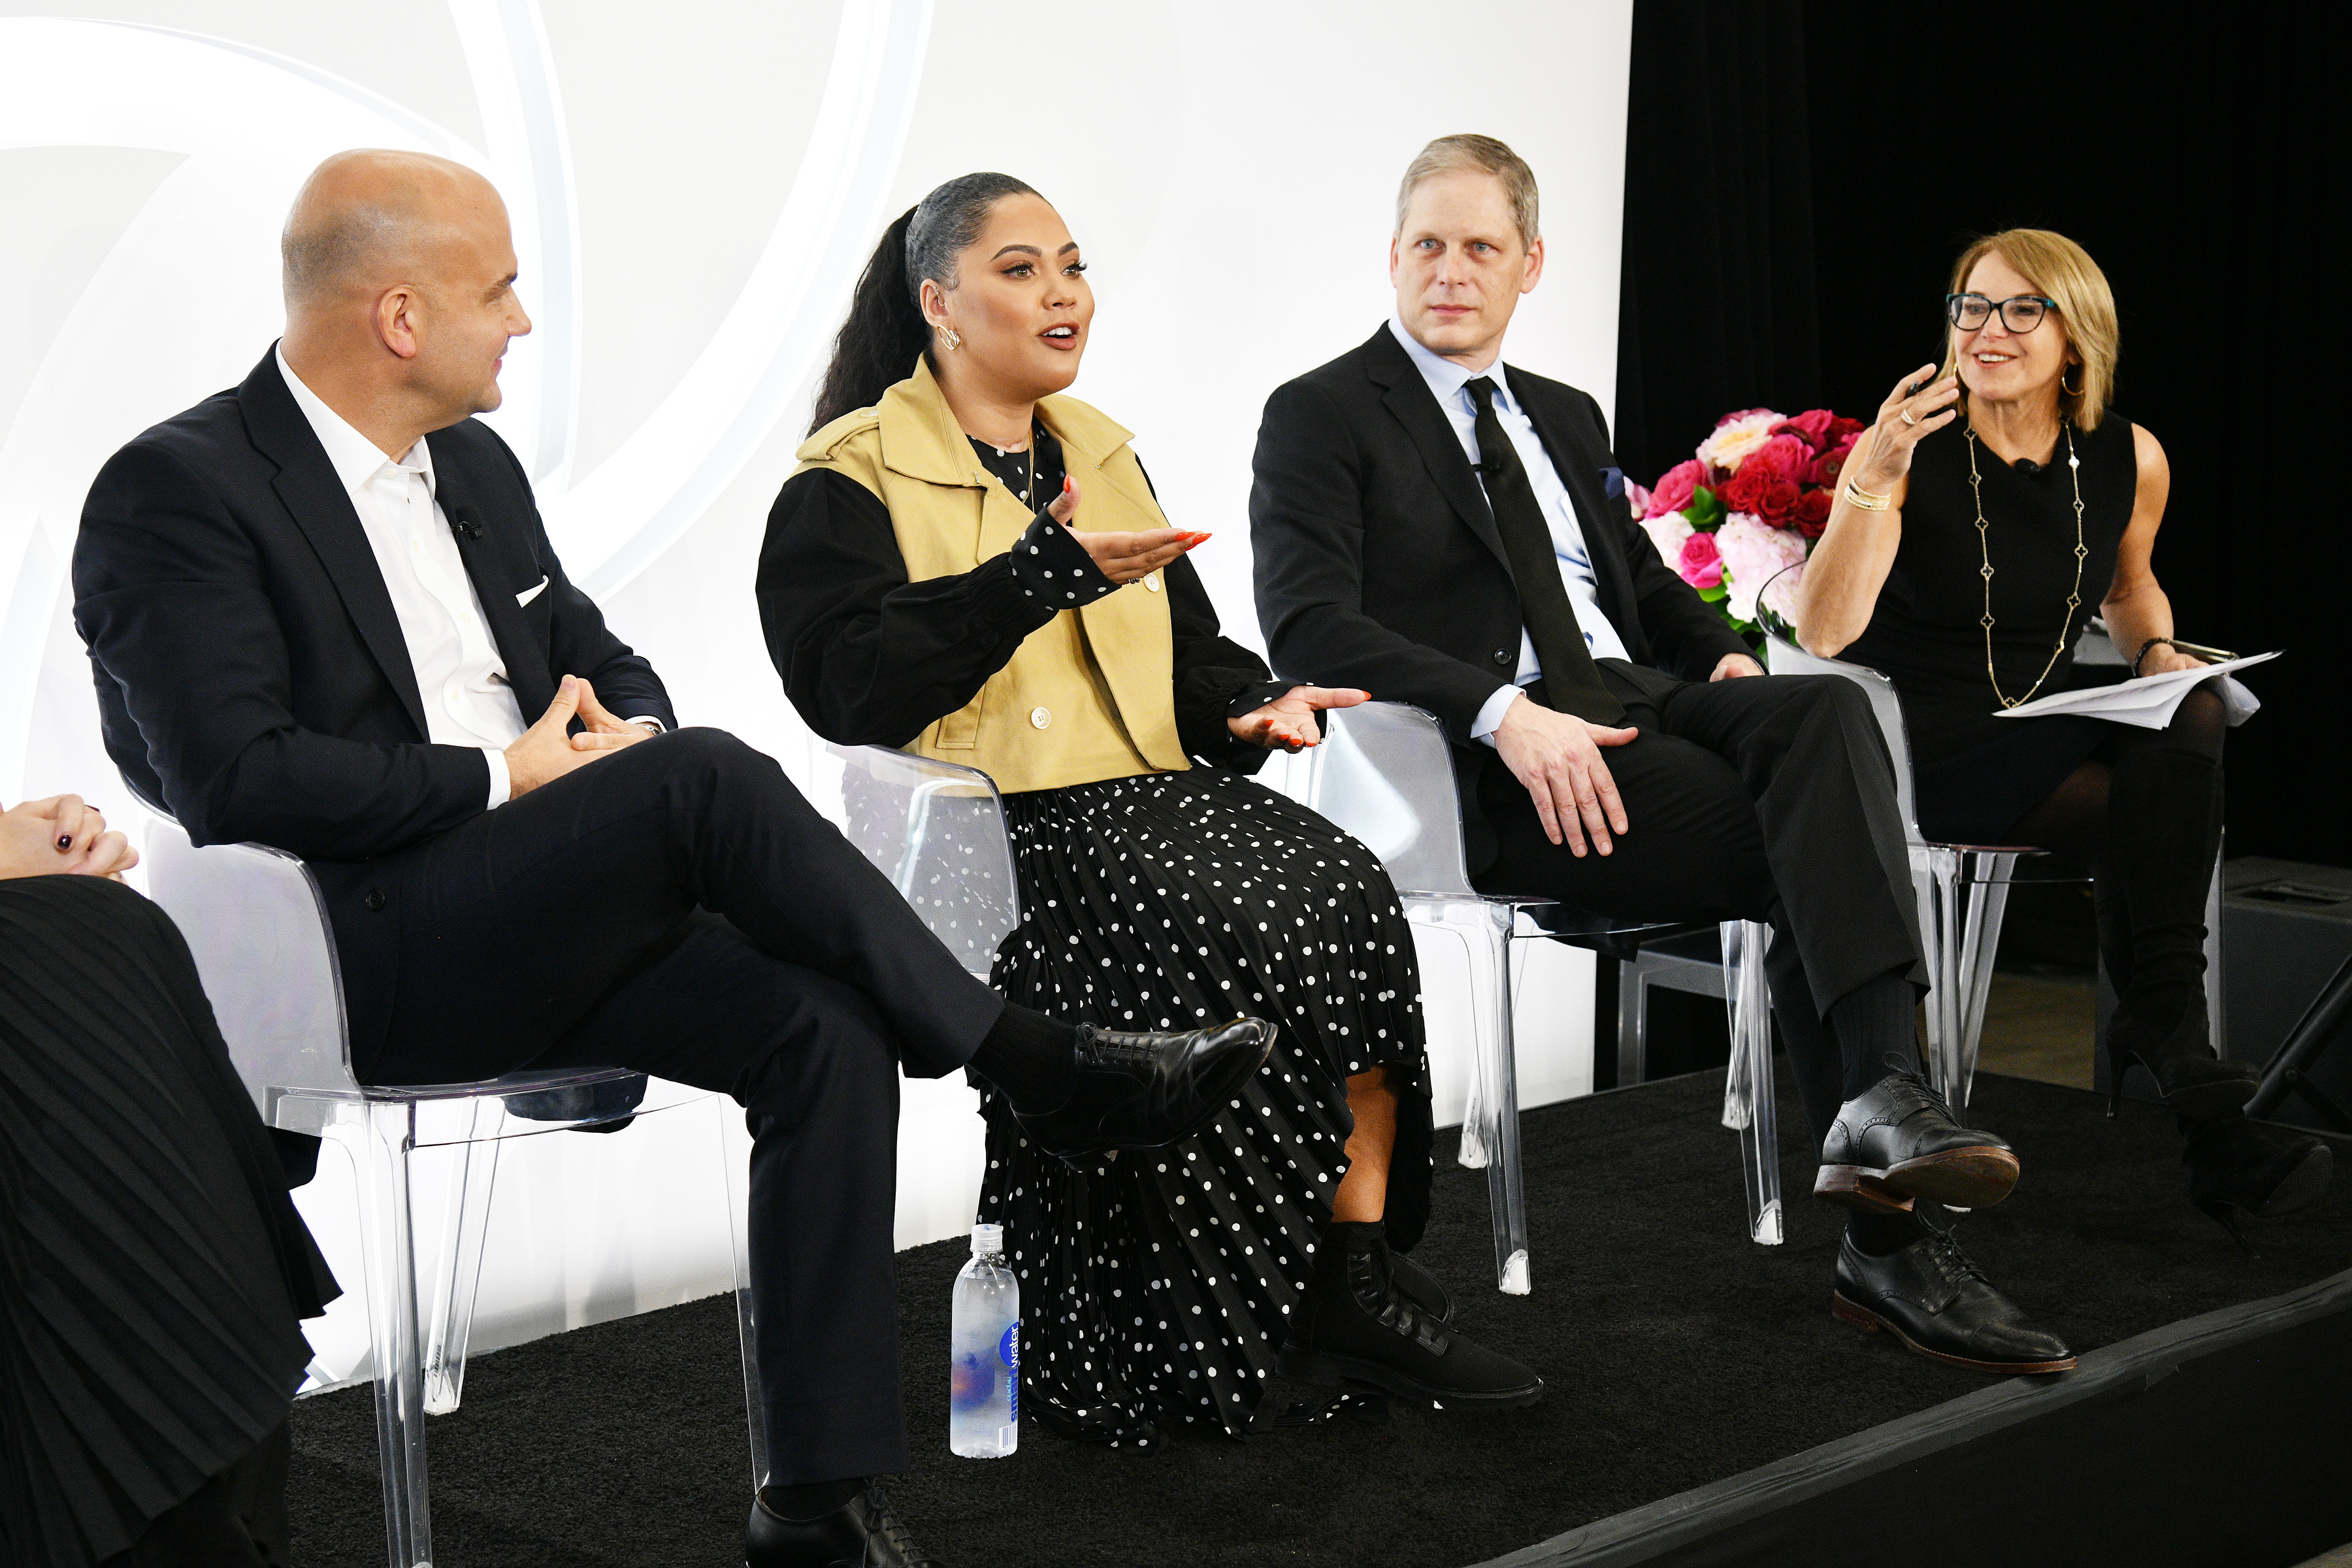 NEW YORK, NY - JANUARY 24:  (L-R) Andrew Stanleick, Ayesha Curry, Norman de Greve, and Katie Couric participate in a panel discussion as CVS Pharmacy unveils new beauty aisles featuring Unaltered brand partner 2019 beauty campaigns on January 24, 2019 in New York City.  (Photo by Bryan Bedder/Getty Images for CVS Pharmacy) *** Local Caption *** Andrew Stanleick;Ayesha Curry;Norman de Greve;Katie Couric